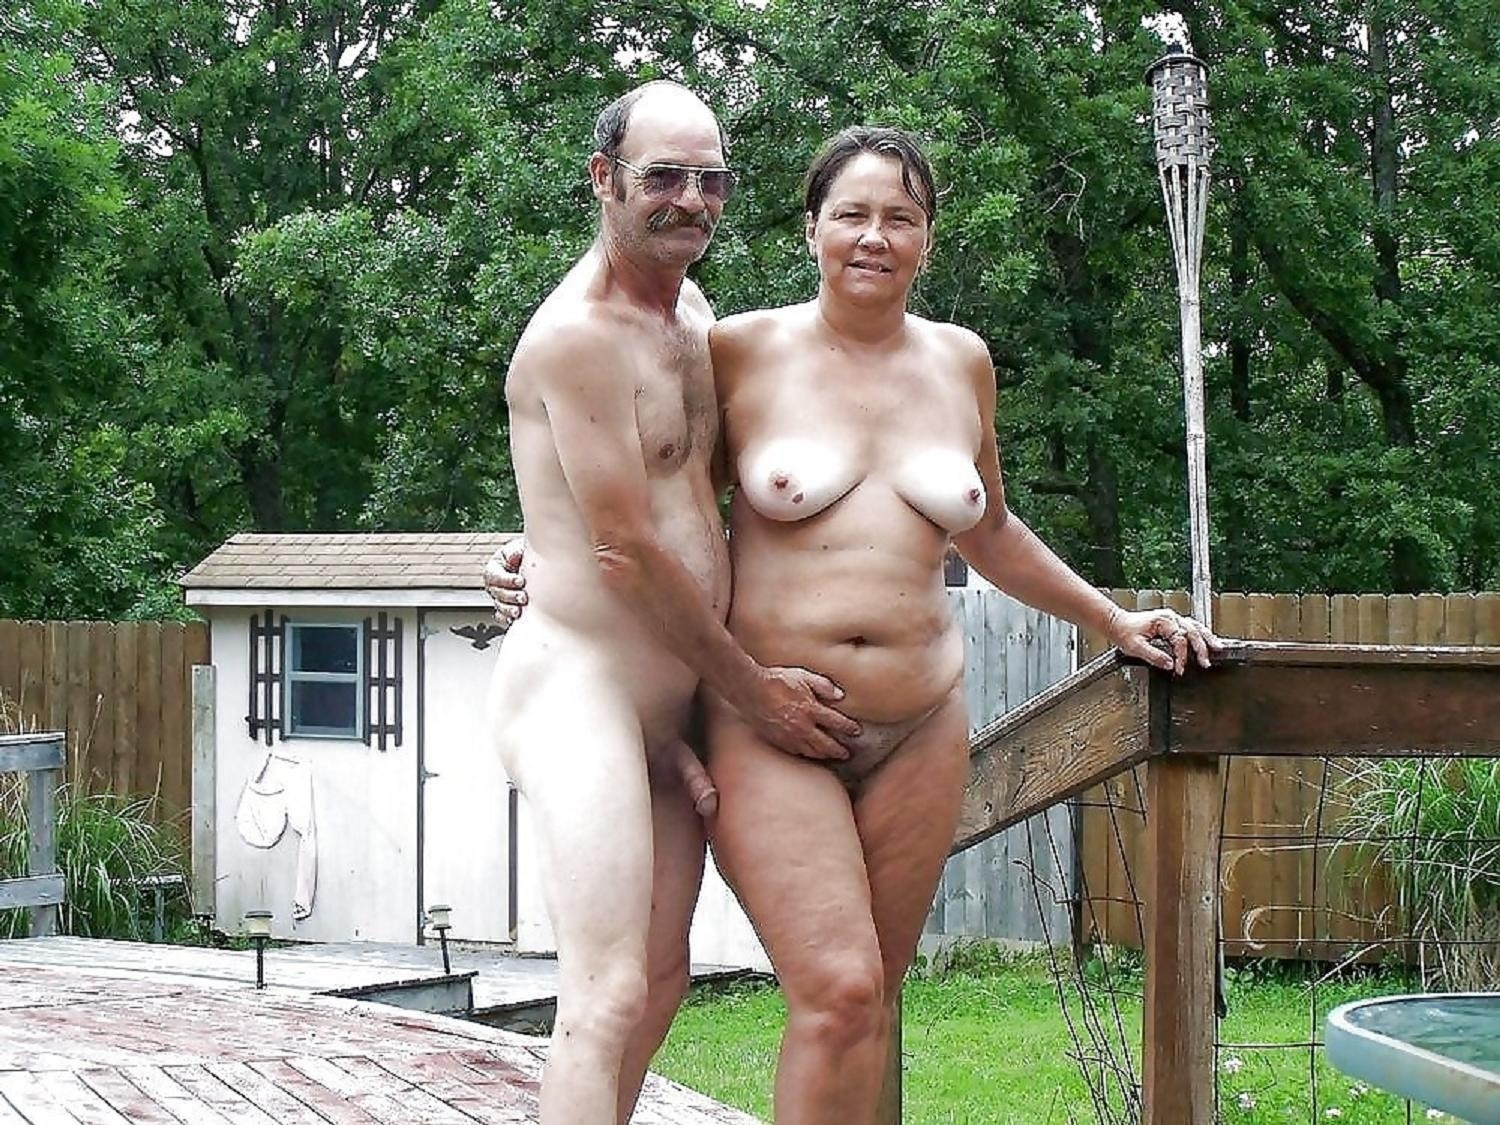 Old couple nude pics, very very young girls naked gifs